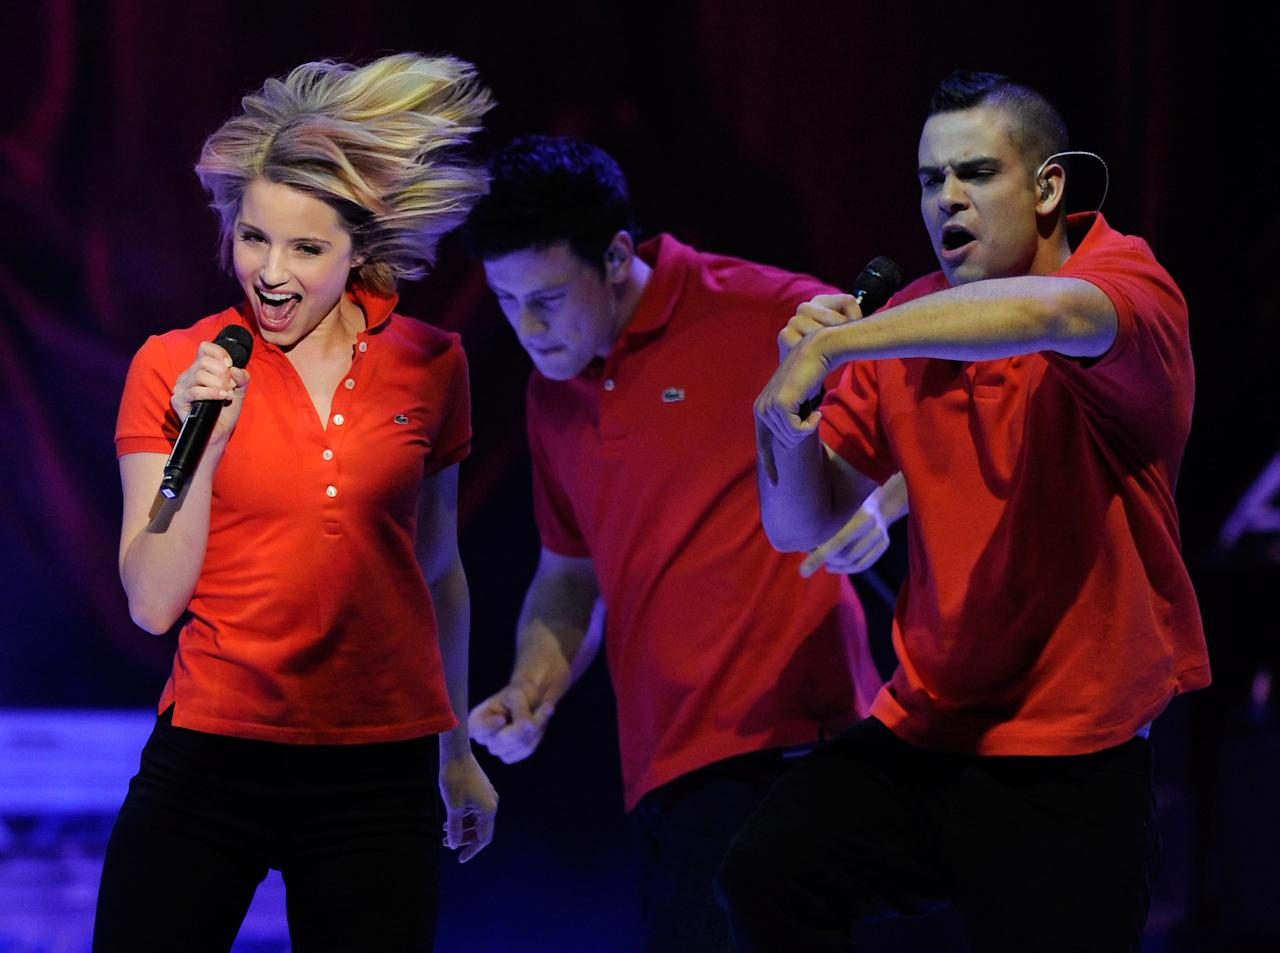 LAS VEGAS, NV - MAY 21:  (L-R) Actress Dianna Agron and actors Cory Monteith and Mark Salling perform during the kickoff of the Glee Live! In Concert! tour at the Mandalay Bay Events Center May 21, 2011 in Las Vegas, Nevada.  (Photo by Ethan Miller/Getty Images)